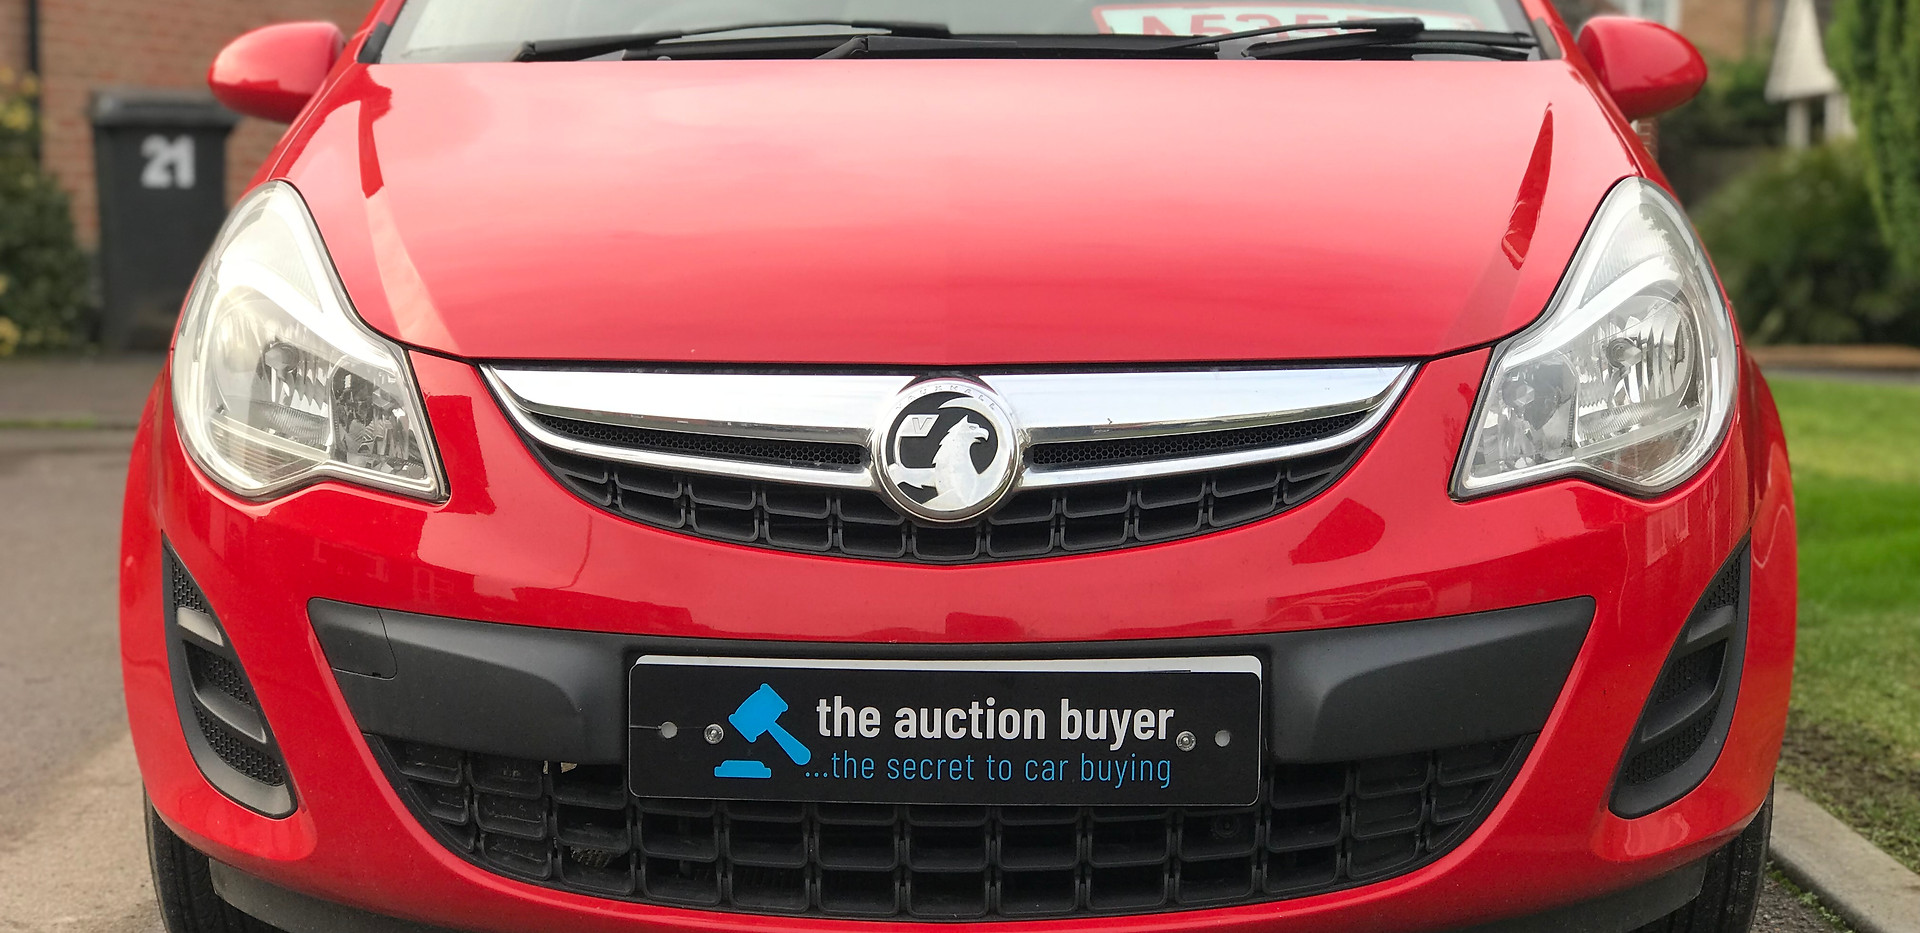 Vauxhall Corsa | Sourced by Theauctionbuyer.com